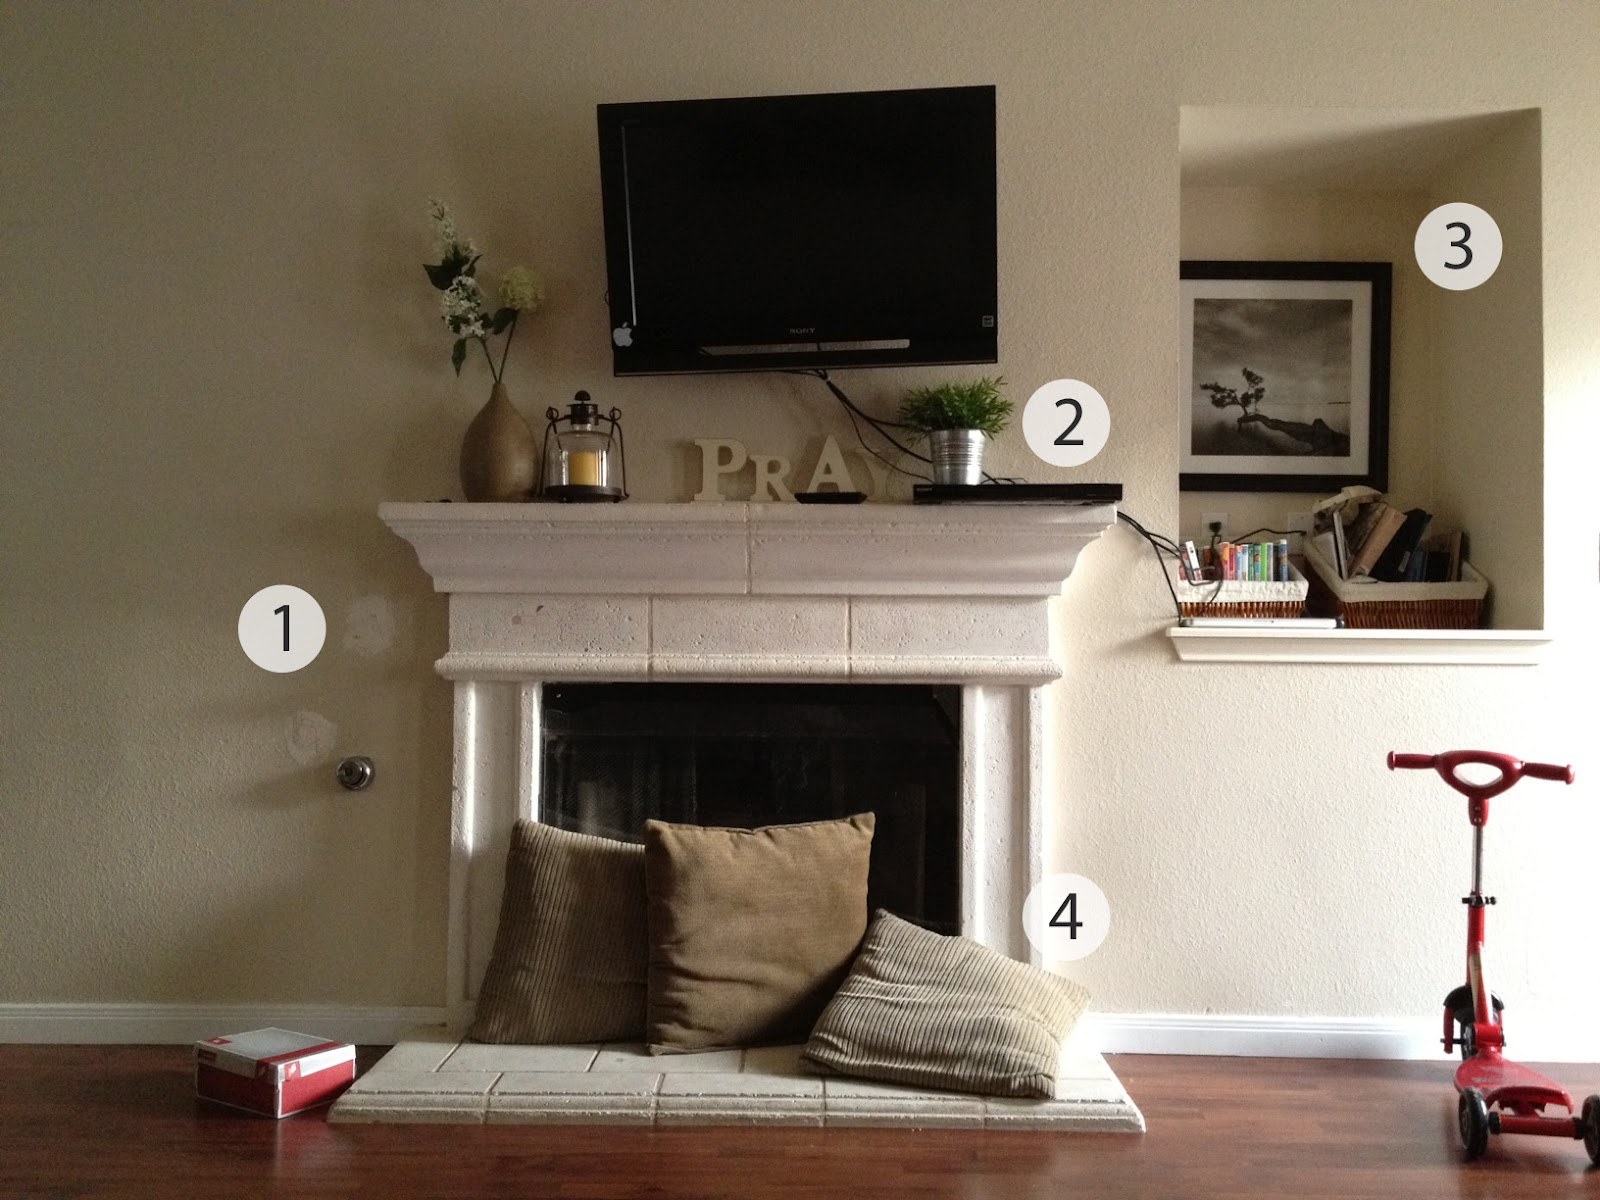 Living Room Fireplace Off Centered Burnt Orange Curtains For Cinsarah The